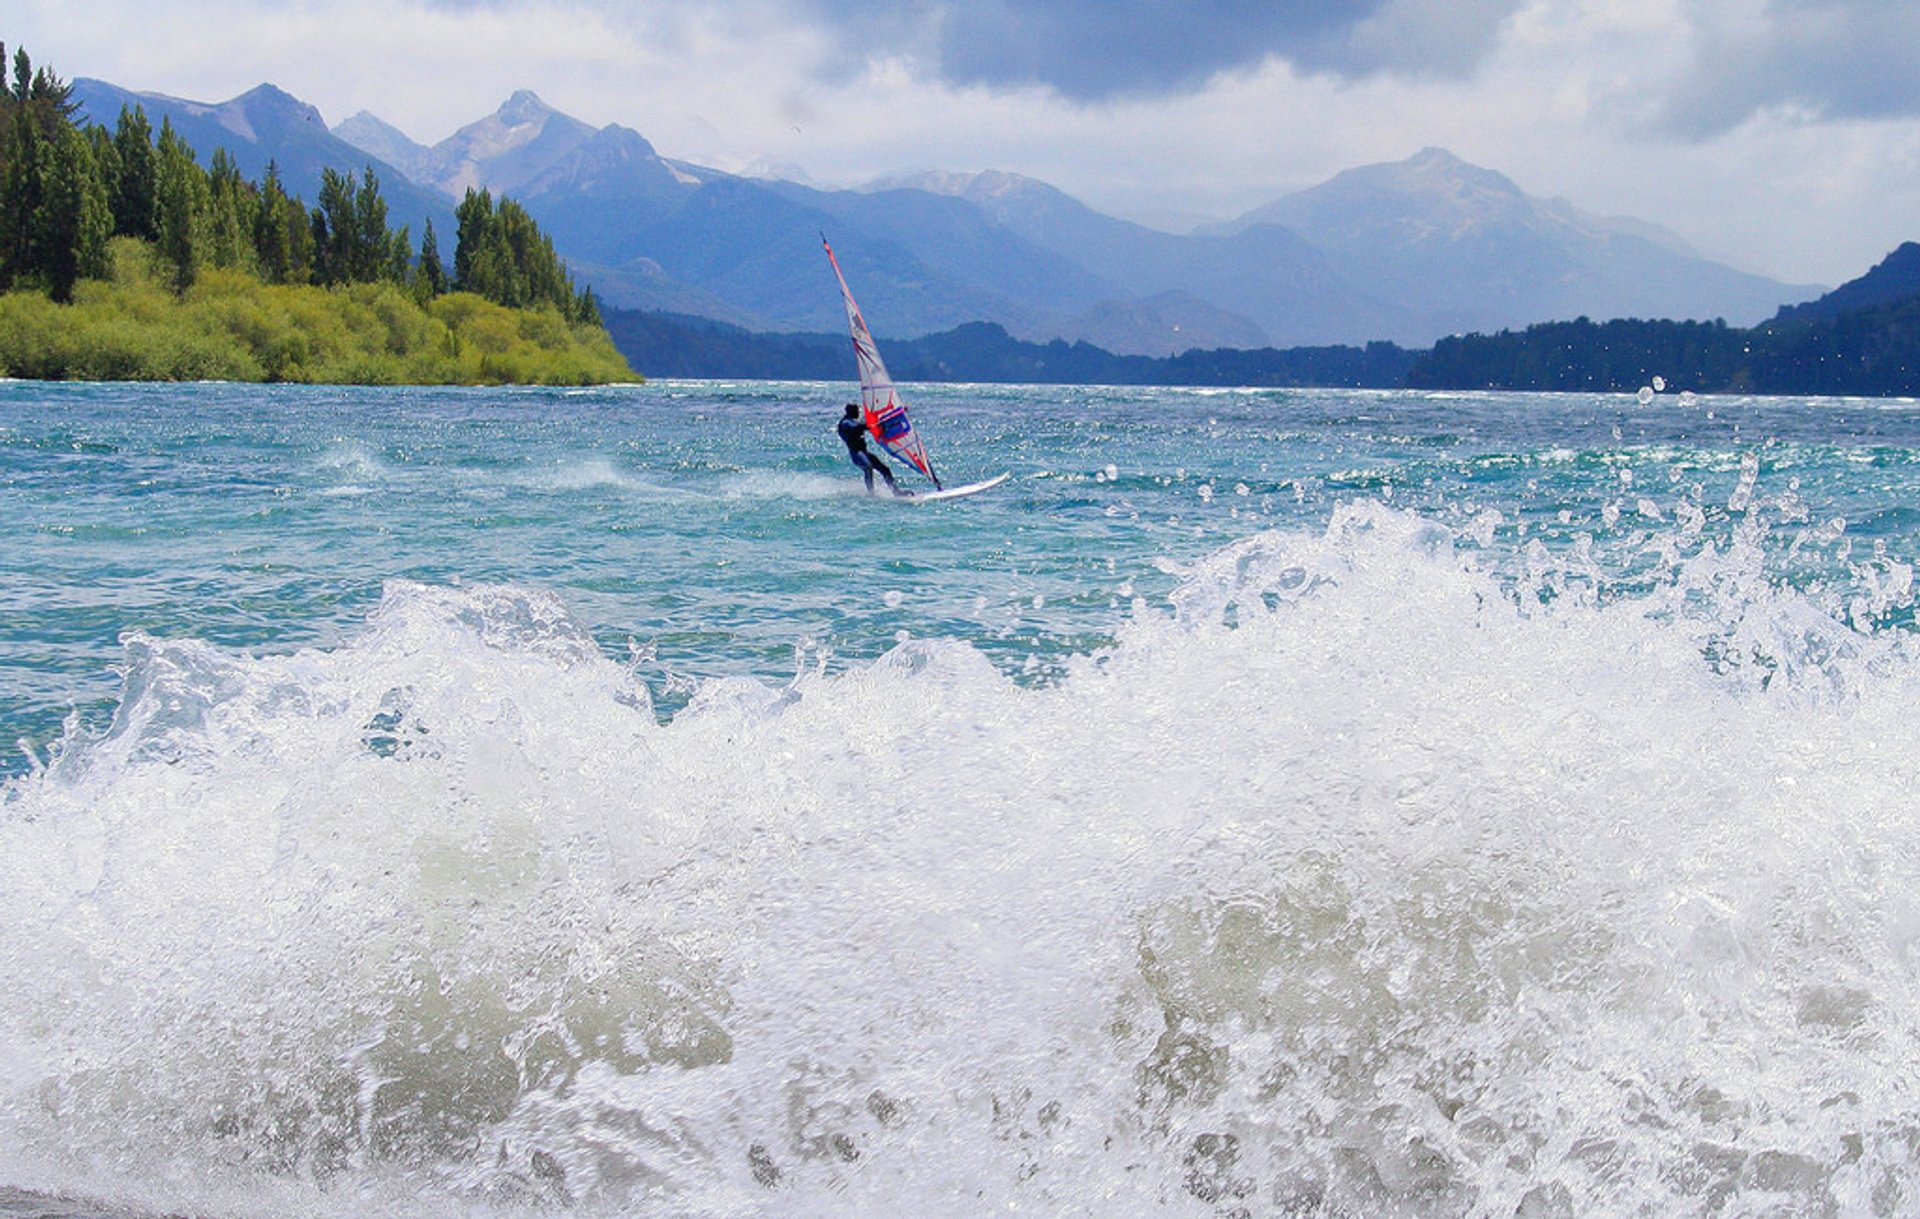 Windsurfing in Argentina 2020 - Best Time